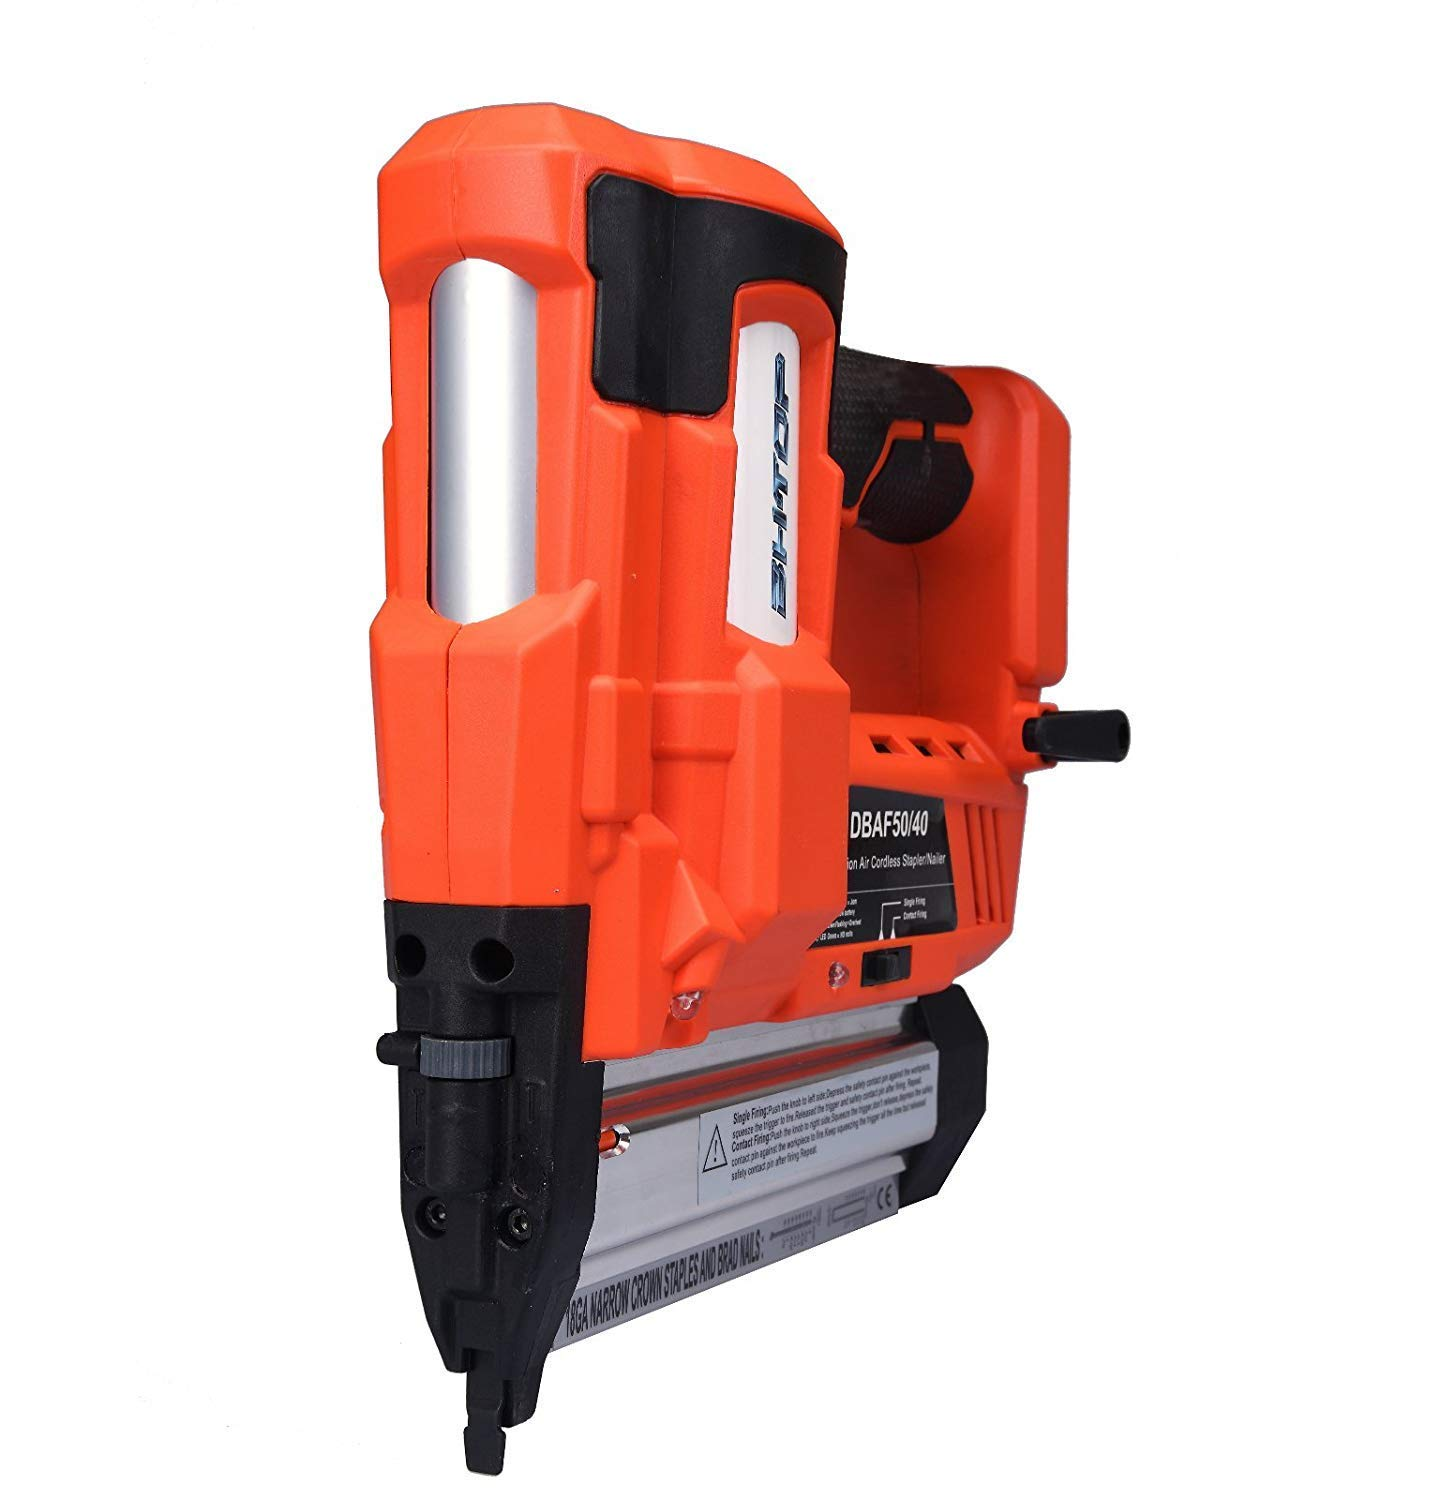 Charger and Carrying Case) 2 in 1 18Ga Heavy Tool With 18Volt 2Ah Lithium-ion Rechargeable Battery 1 Battery BHTOP Cordless Nailer /& Stapler